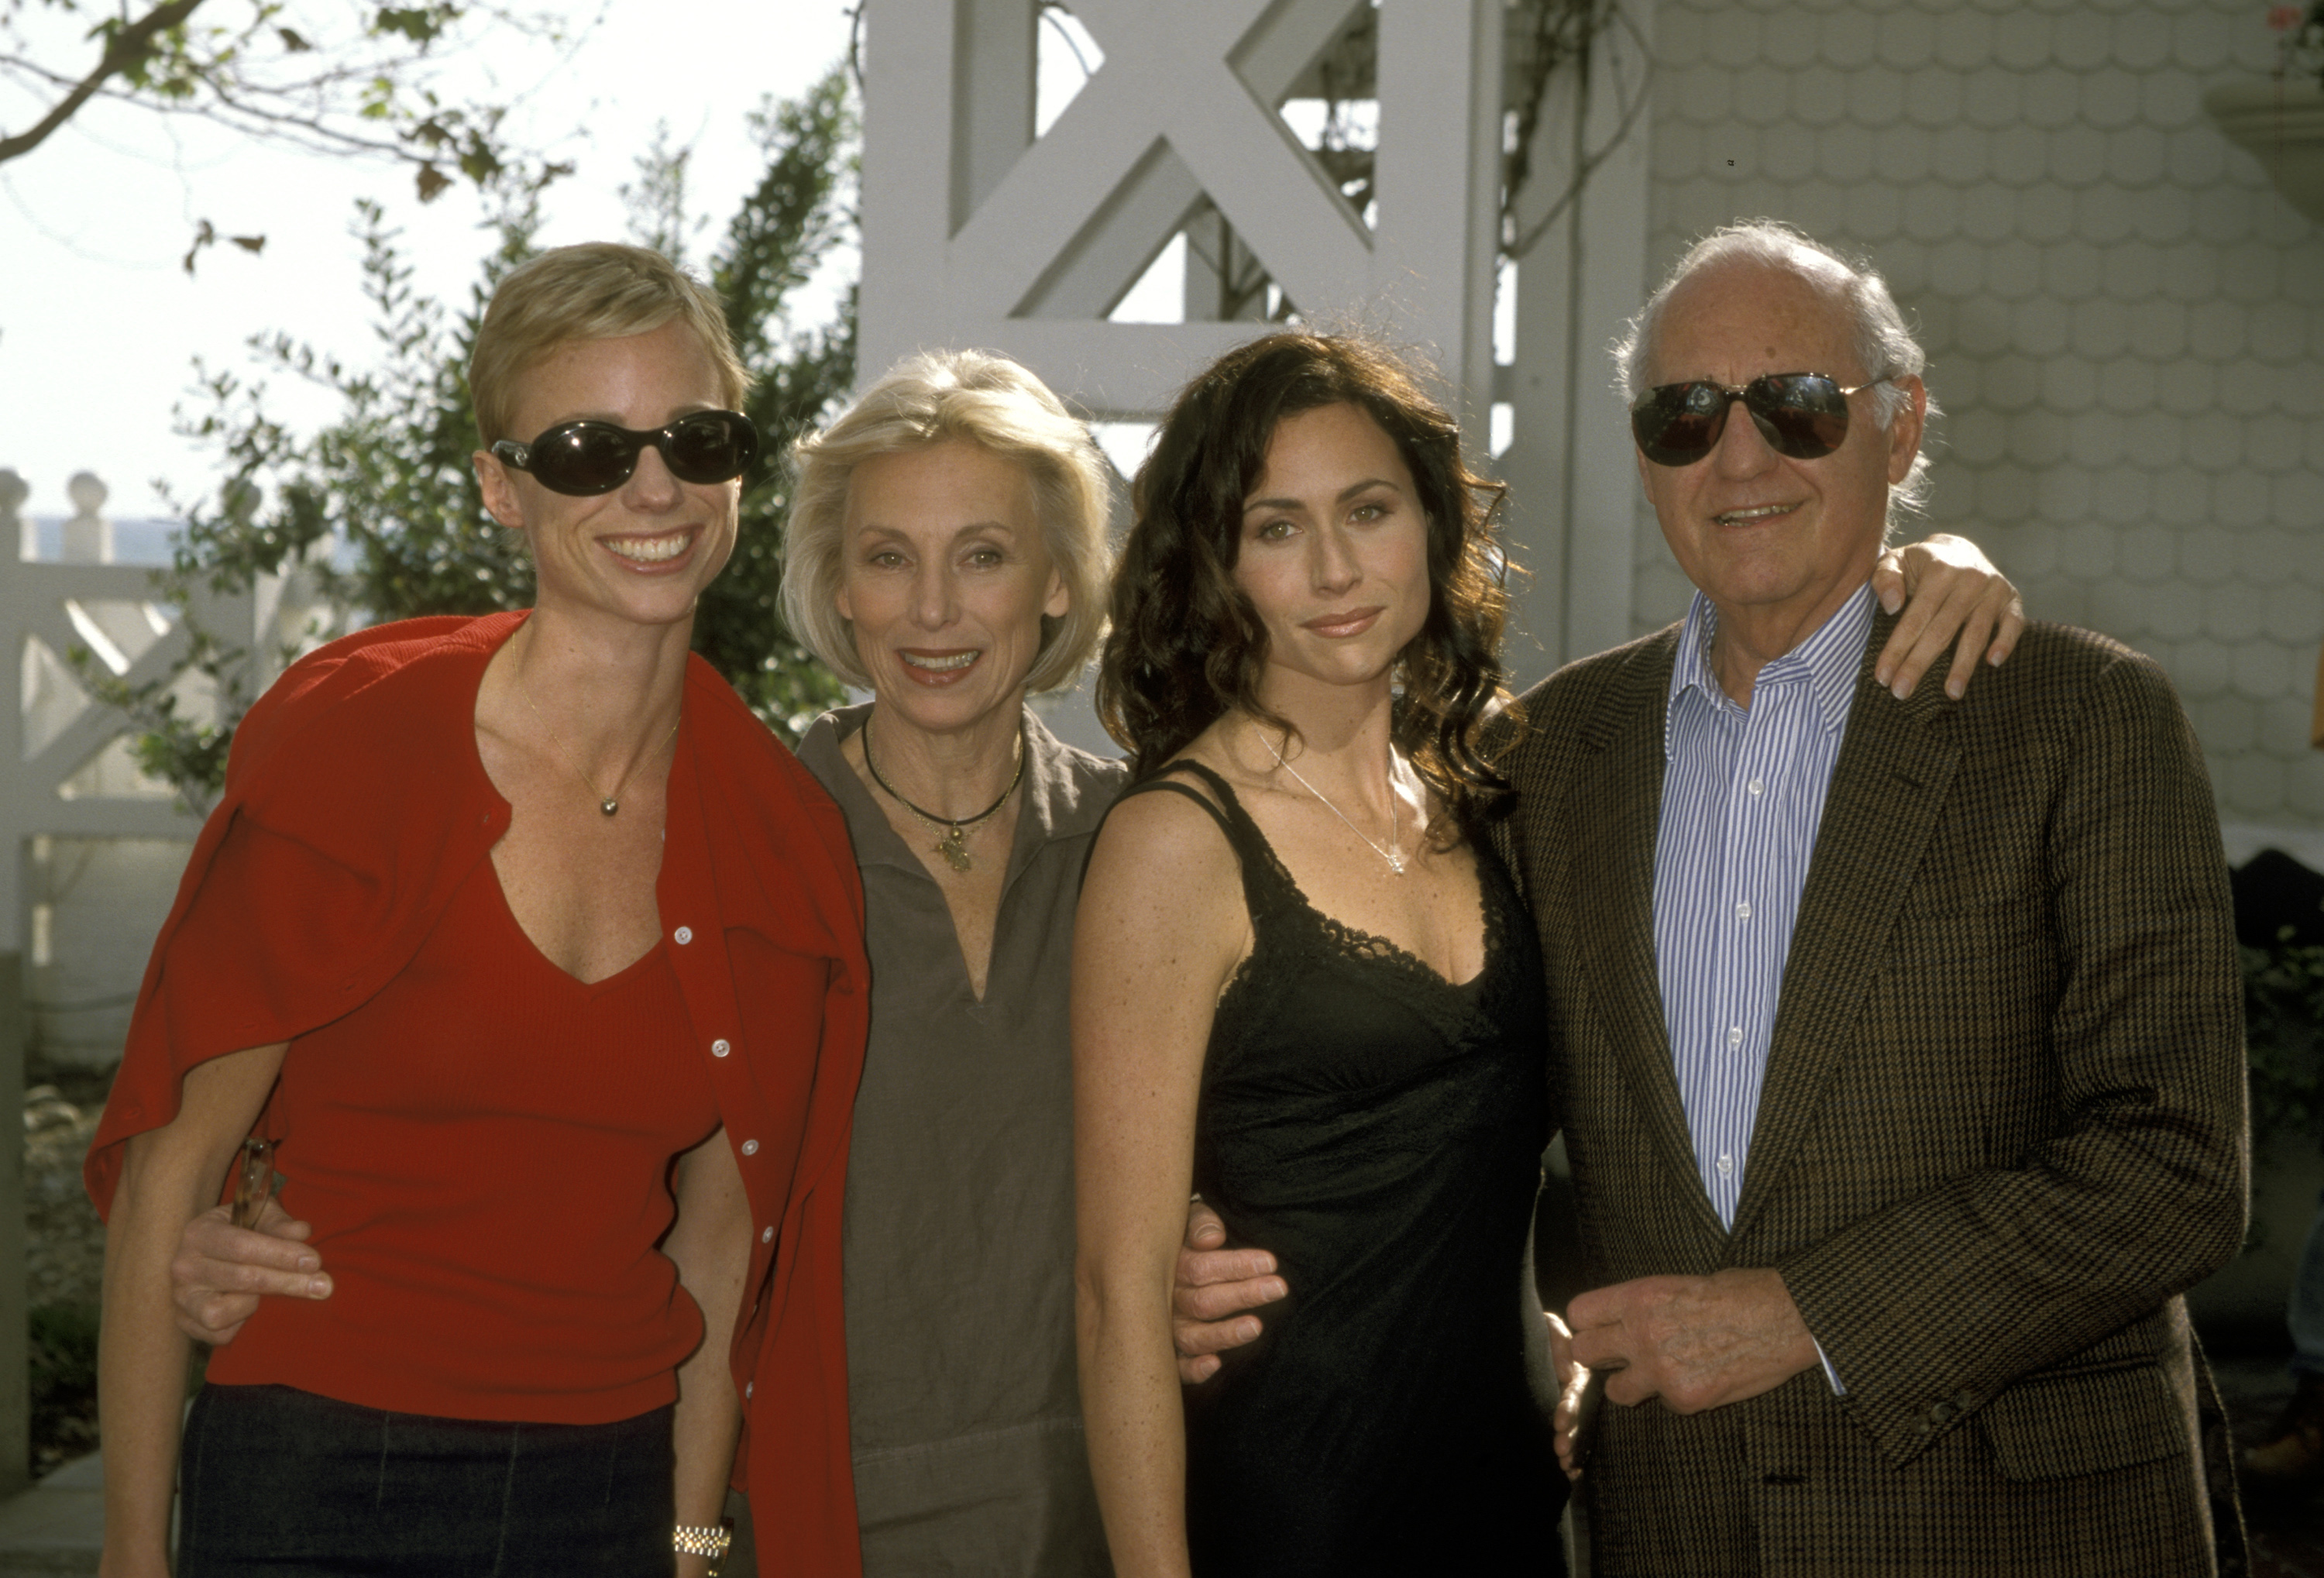 Minnie Driver, Sister Kate Driver, Mom Gaynor Driver, and Father Ronnie Driver.